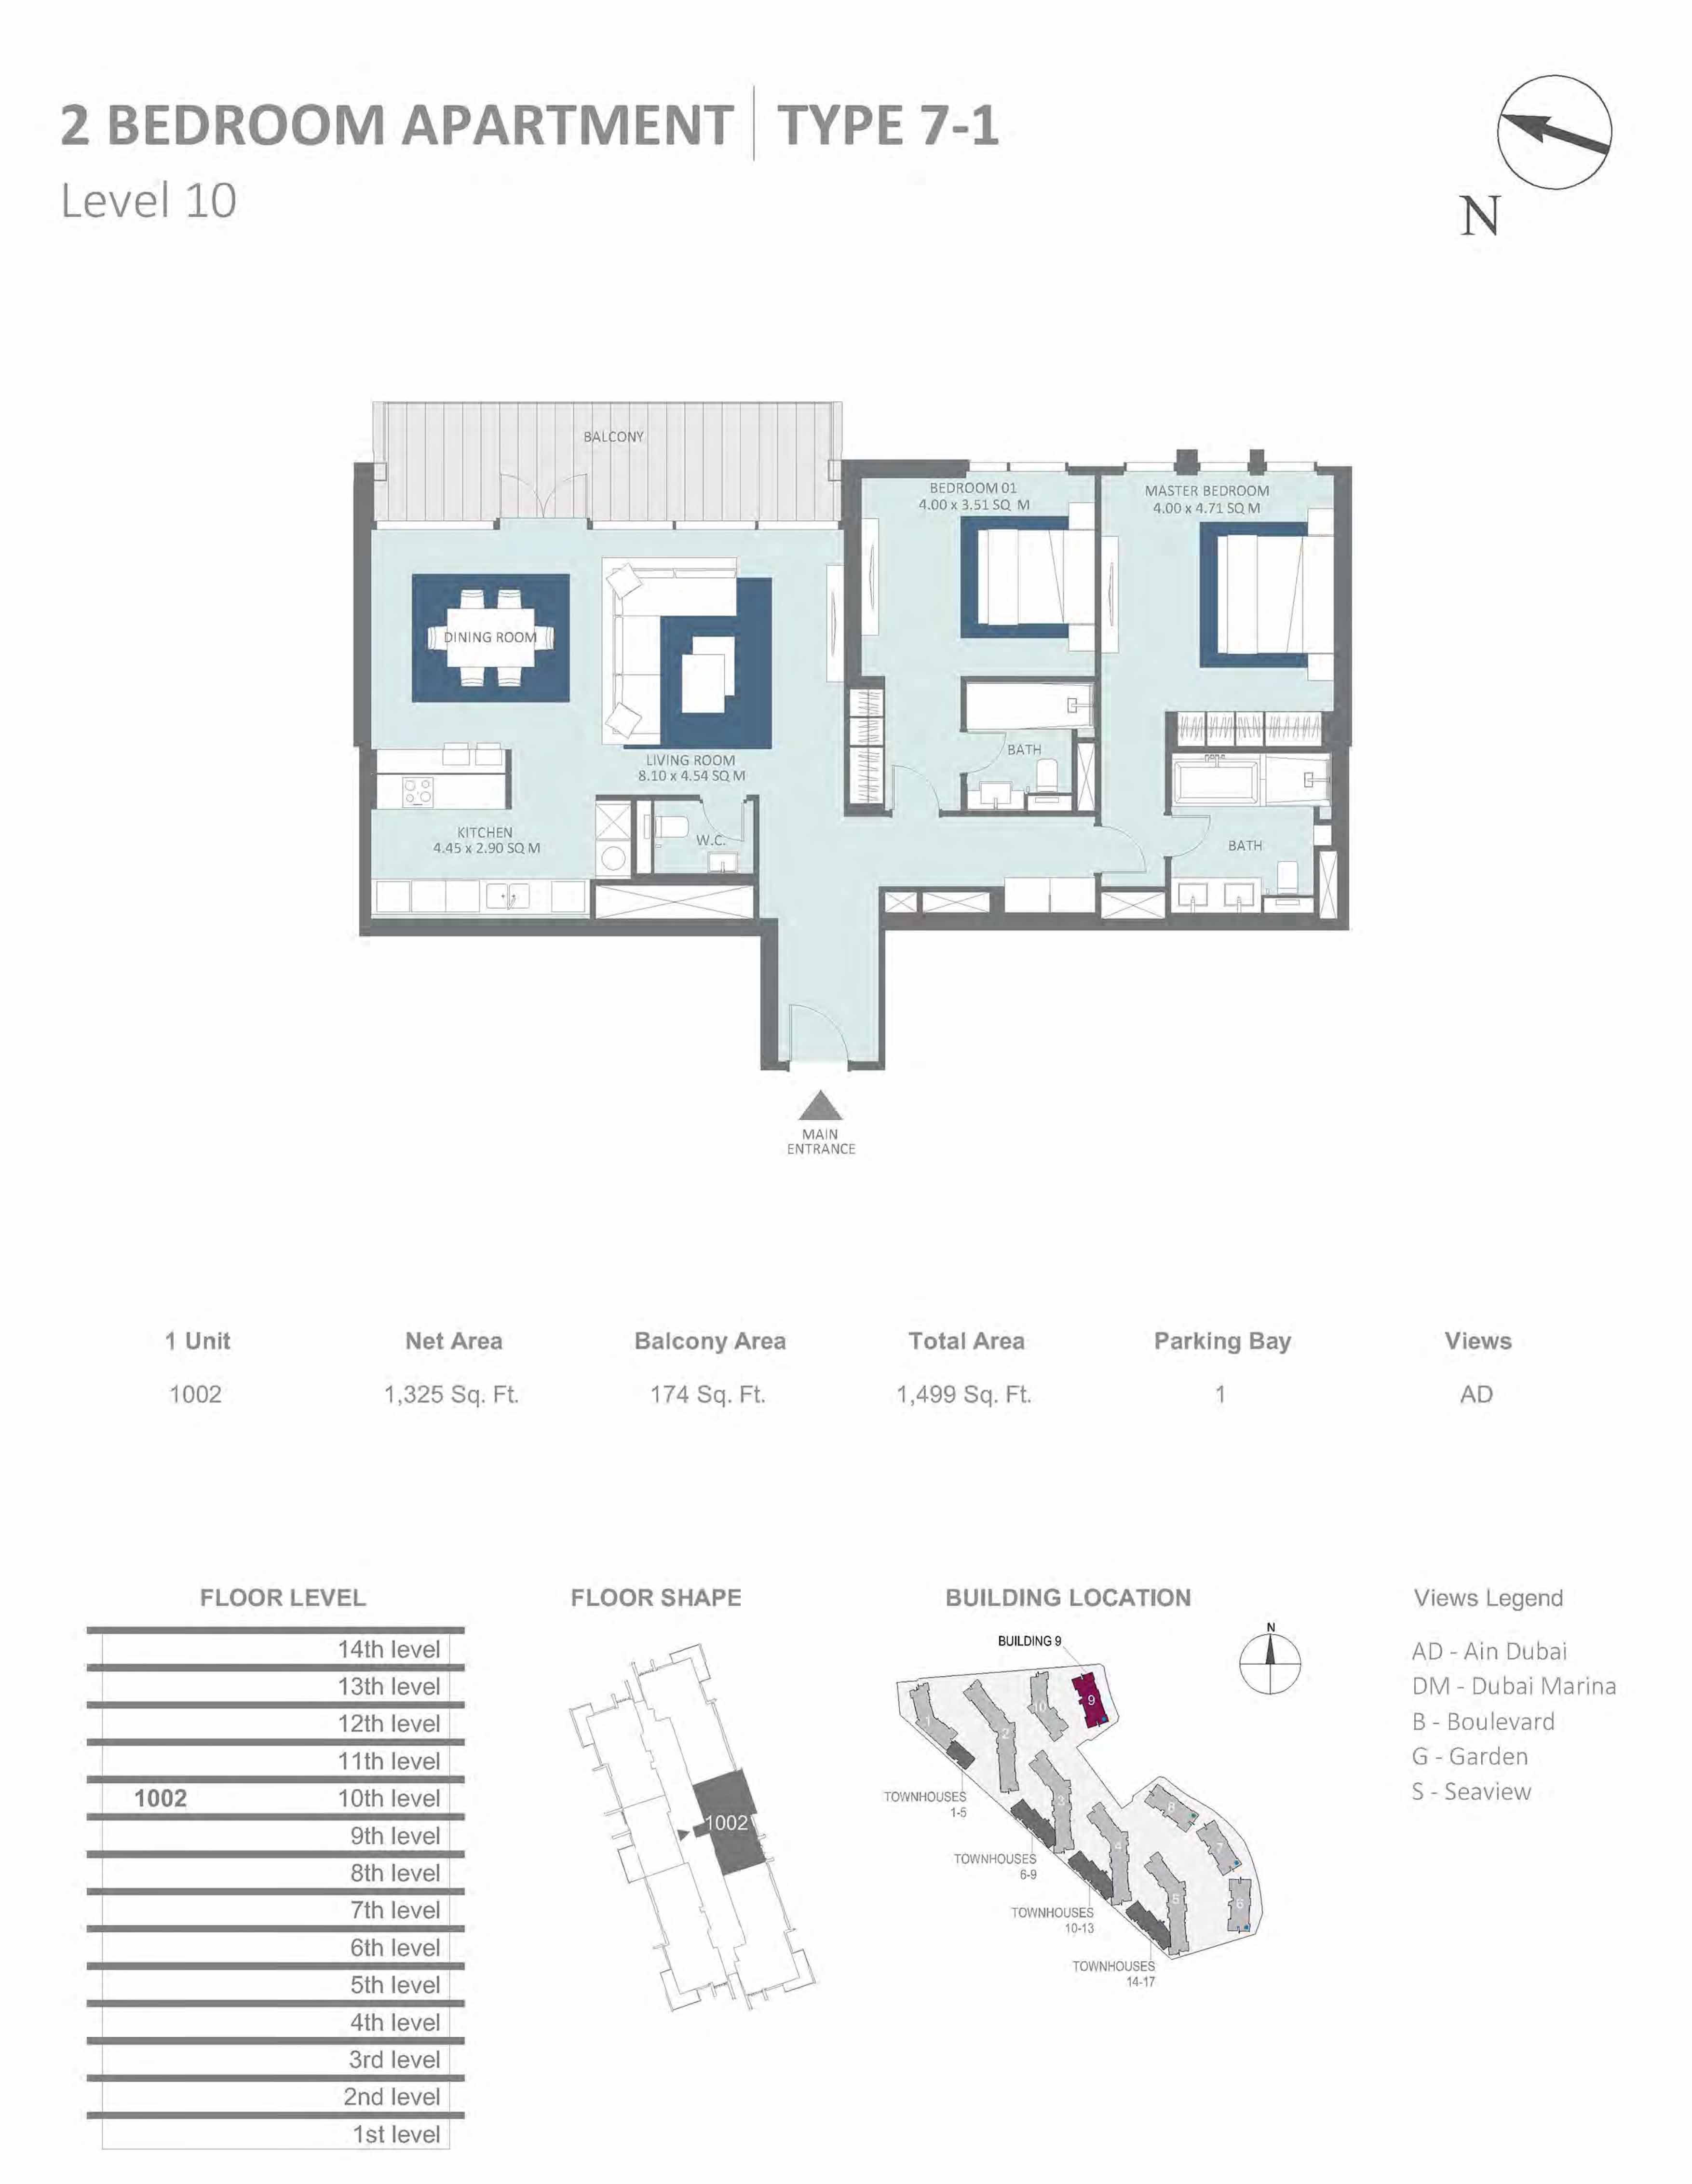 Building 9 - 2 Bedroom Type 7-1, Level 10 Size 1499  sq. ft.